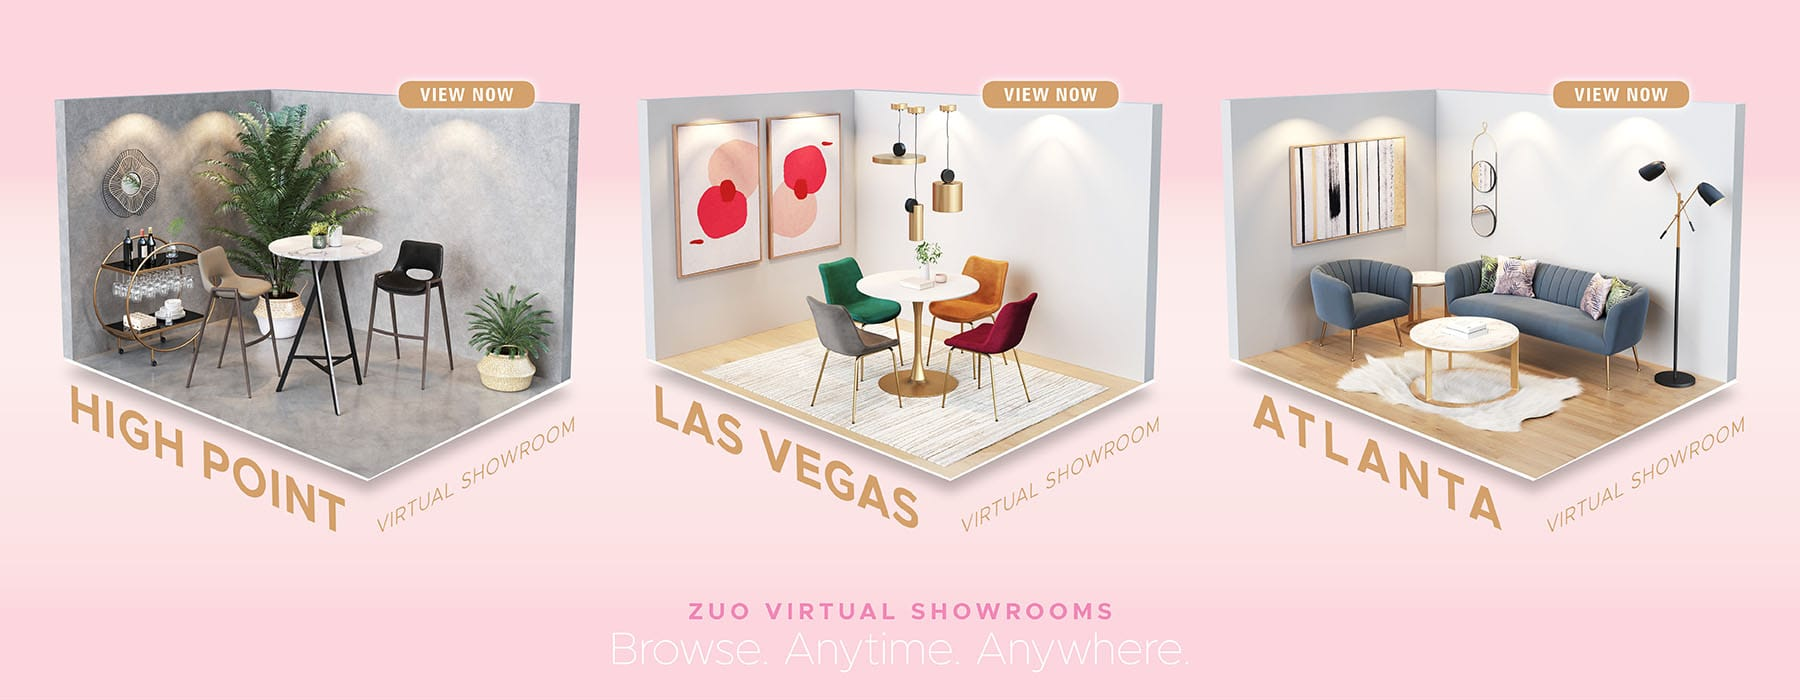 No Traveling, No Problem, visit one of our Virtual Showrooms today!